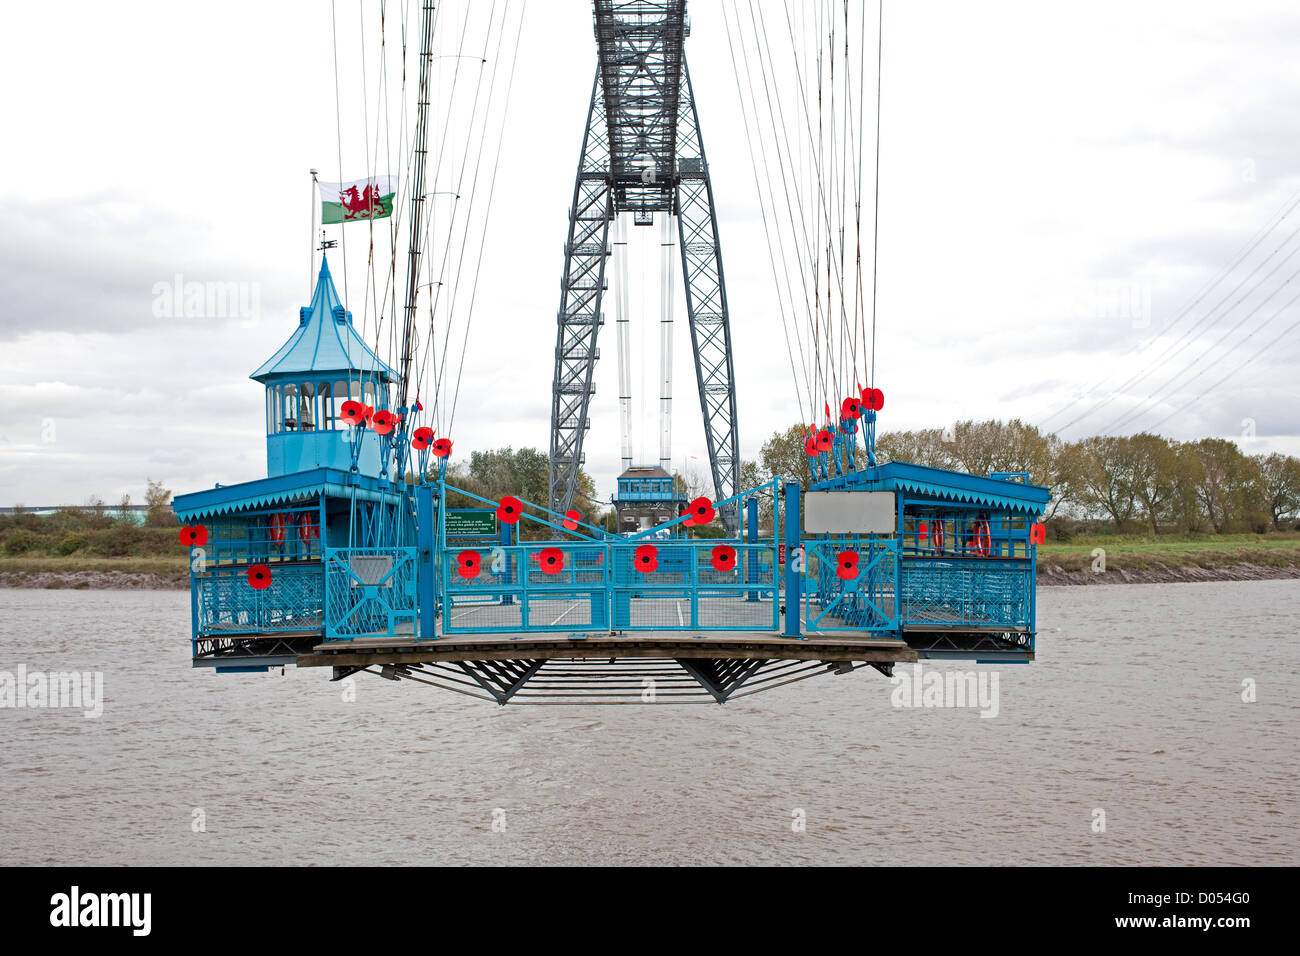 Newport Transporter Bridge Covered in Poppies - Stock Image